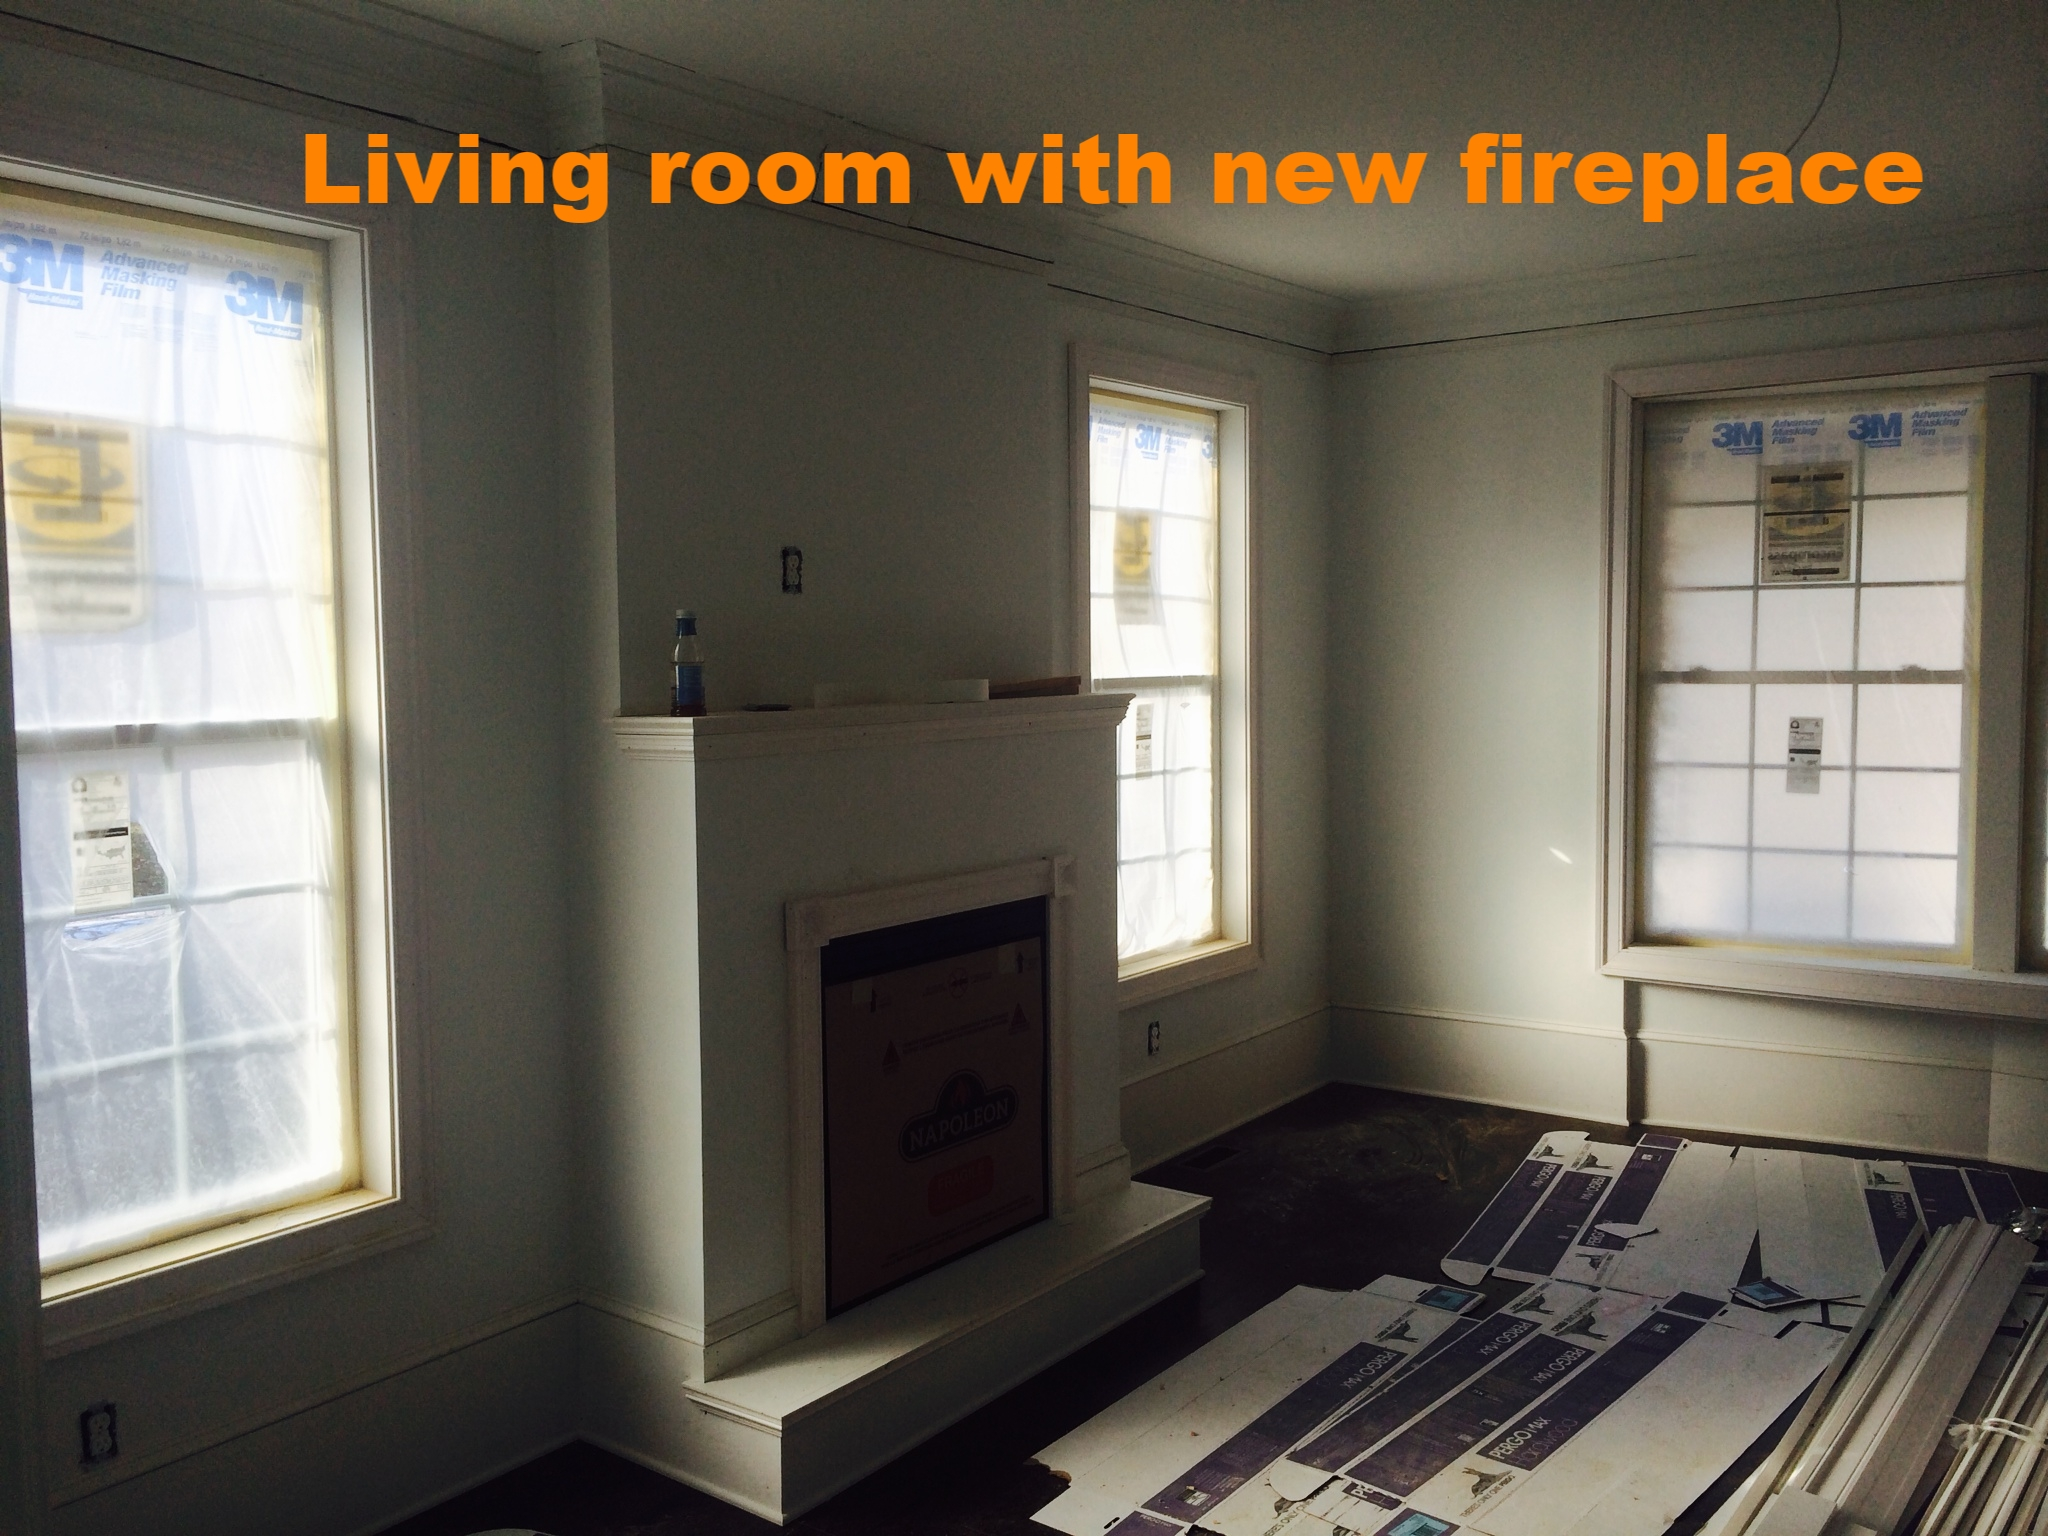 living room_new fireplace.JPG